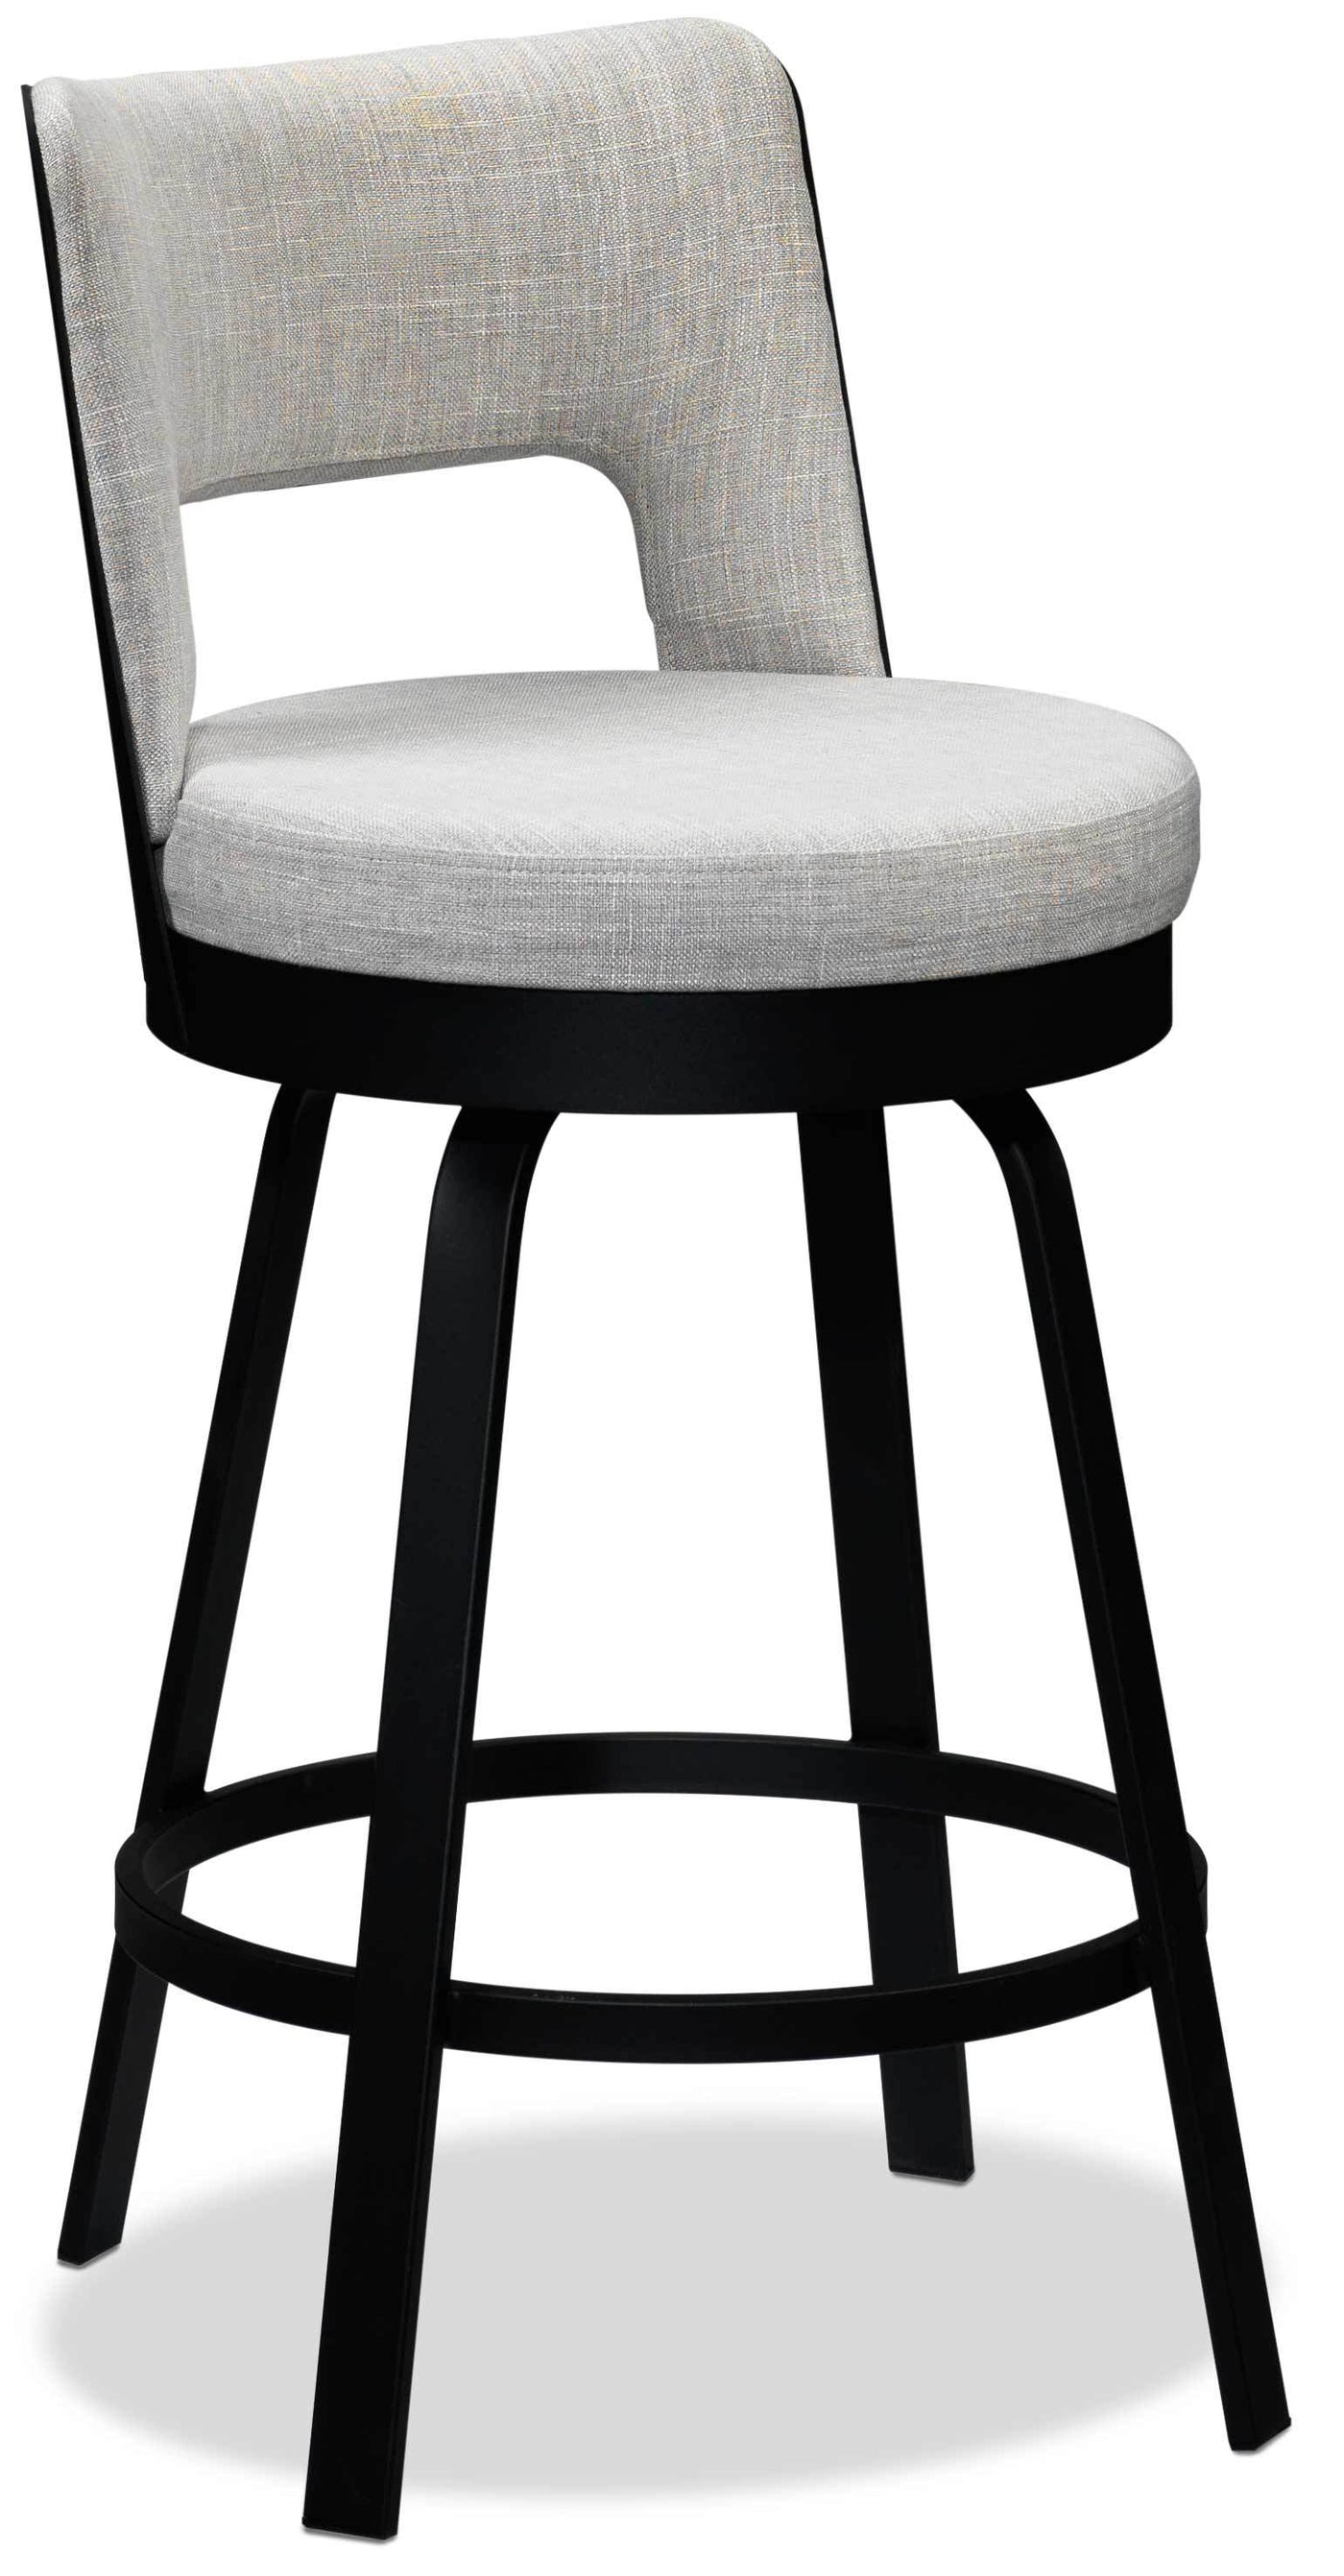 Outstanding Brooks Swivel Counter Height Bar Stool Light Grey Squirreltailoven Fun Painted Chair Ideas Images Squirreltailovenorg